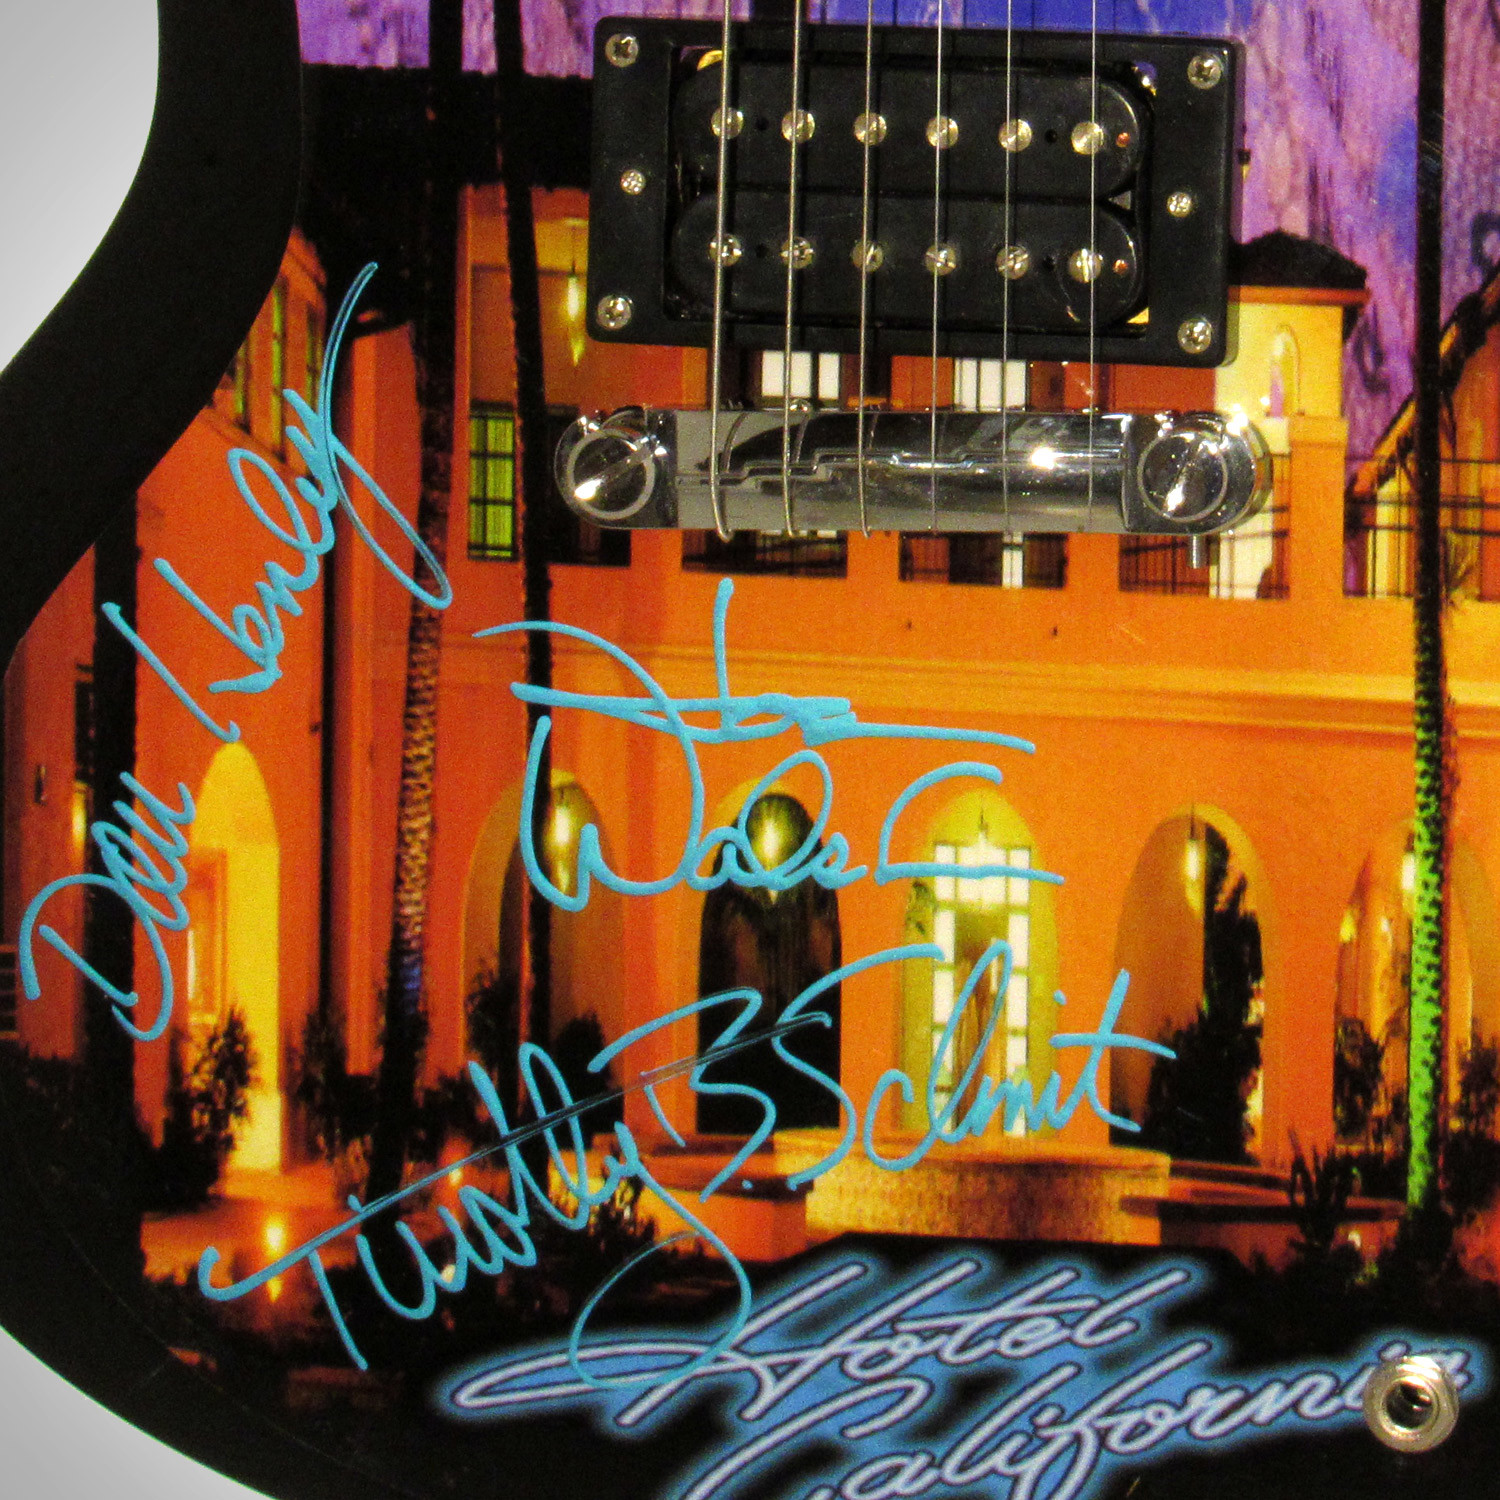 eagles hotel california band autographed guitar rare t touch of modern. Black Bedroom Furniture Sets. Home Design Ideas